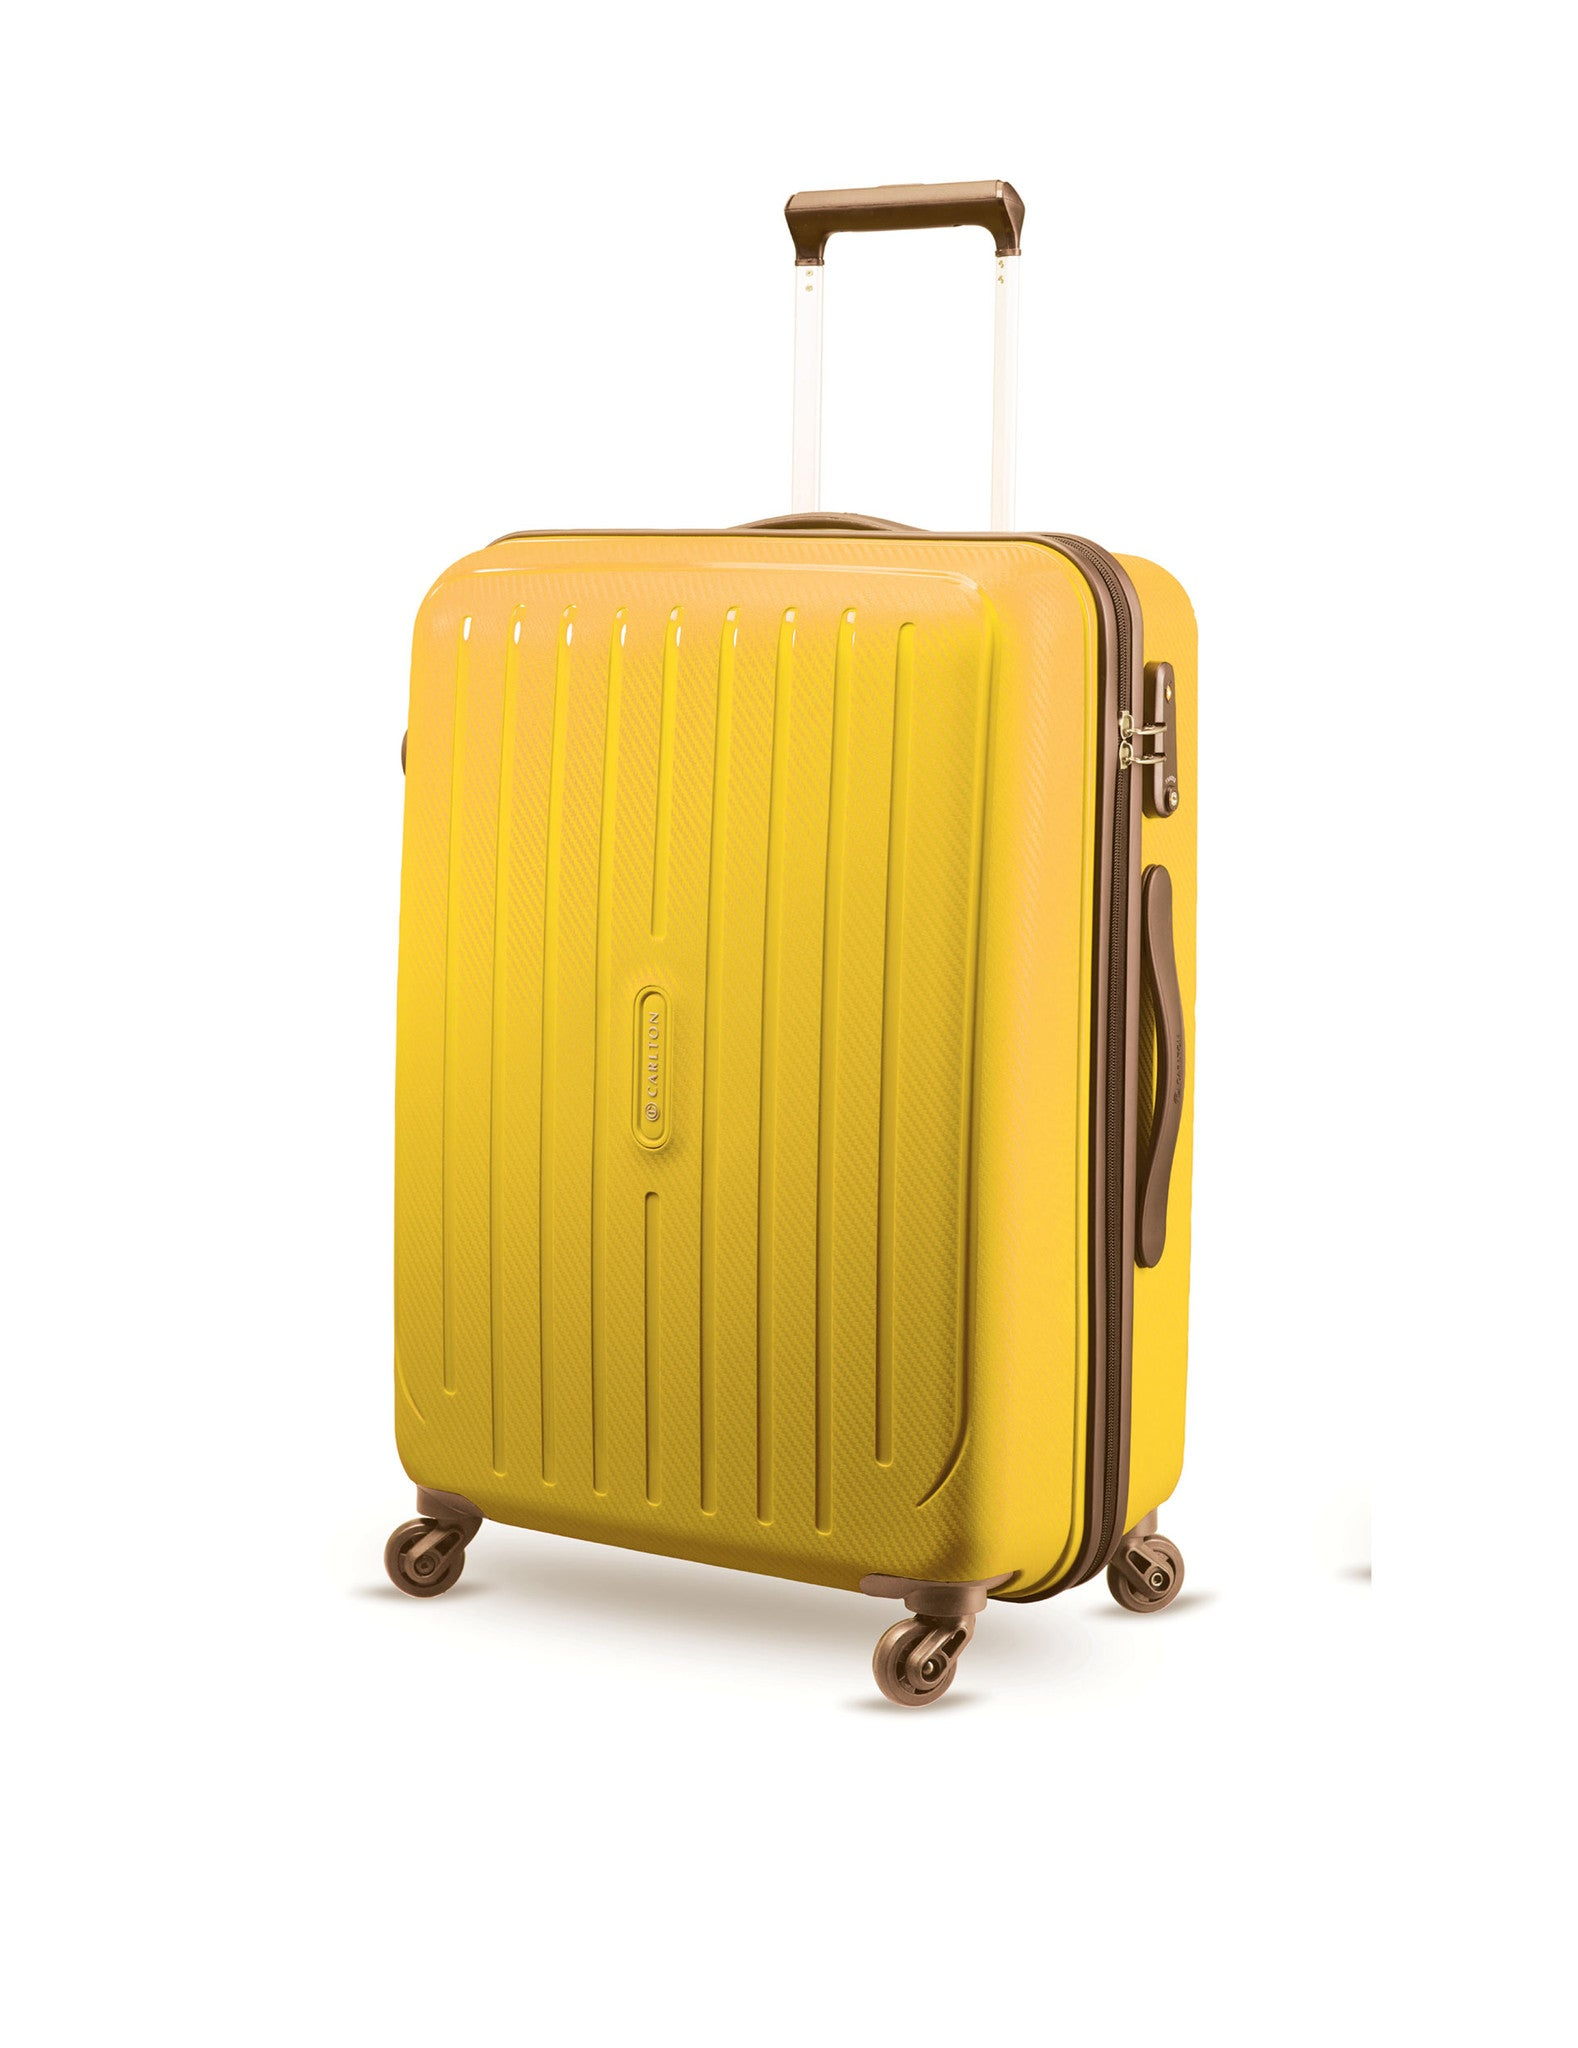 Carlton Phoenix 65cm Size Trolley Case Yellow